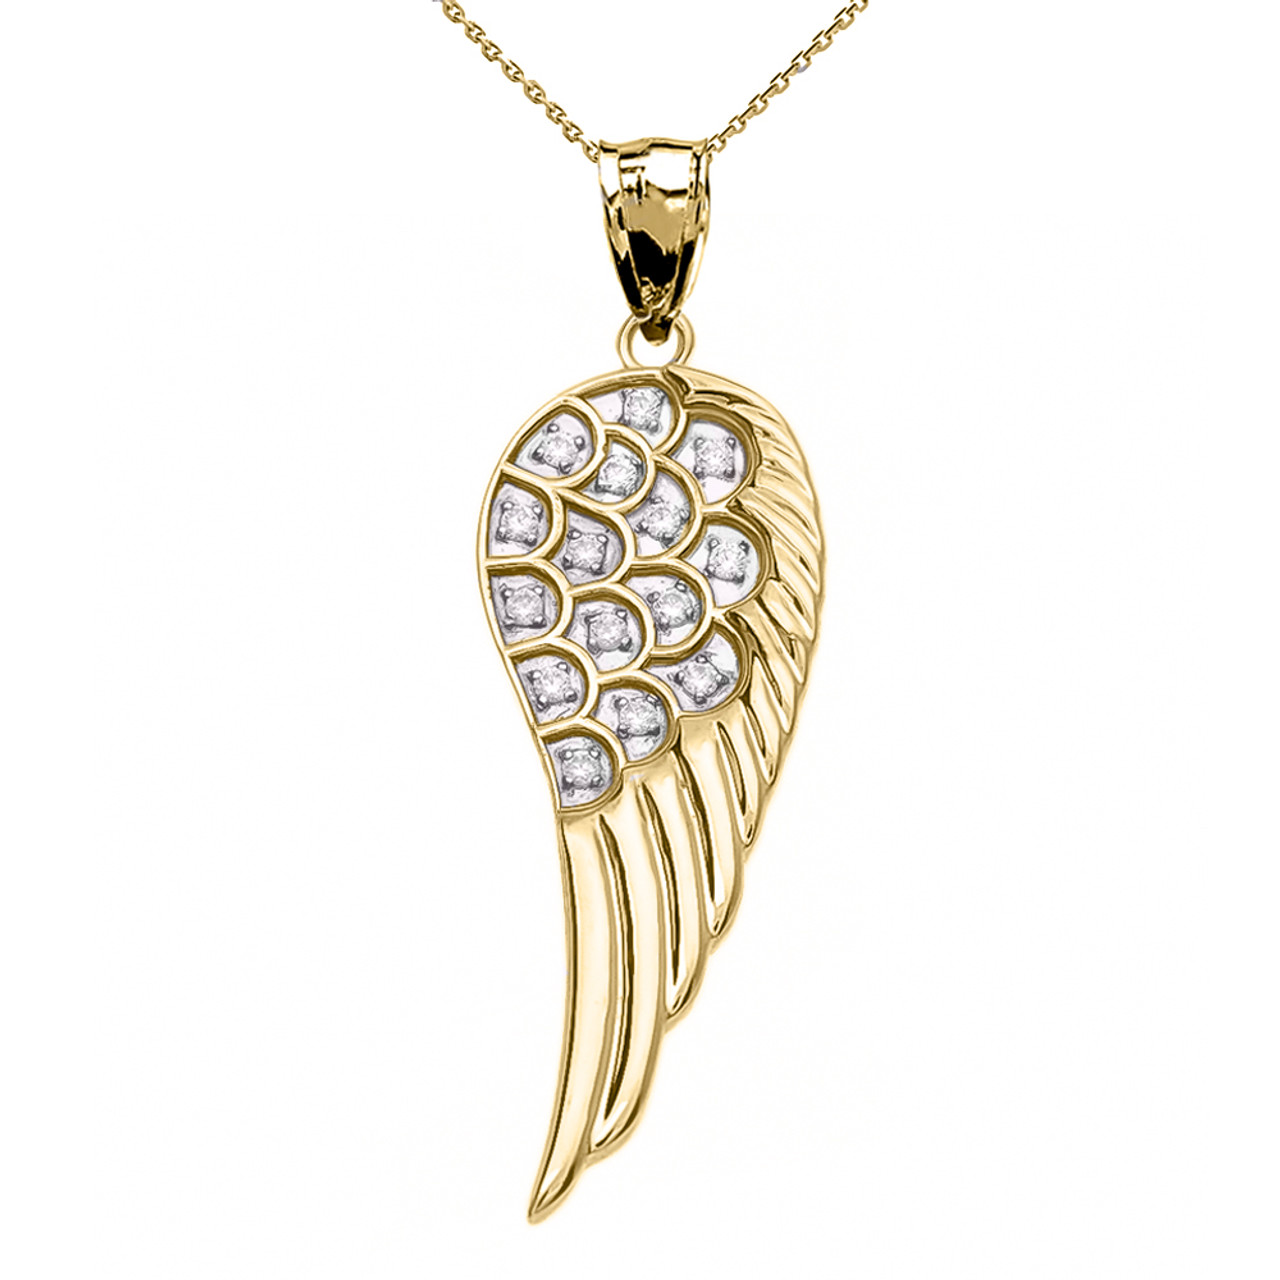 special silver wing wings irish for gift sterling jewelry made elena one jewellery necklace angel a pendant from loved products